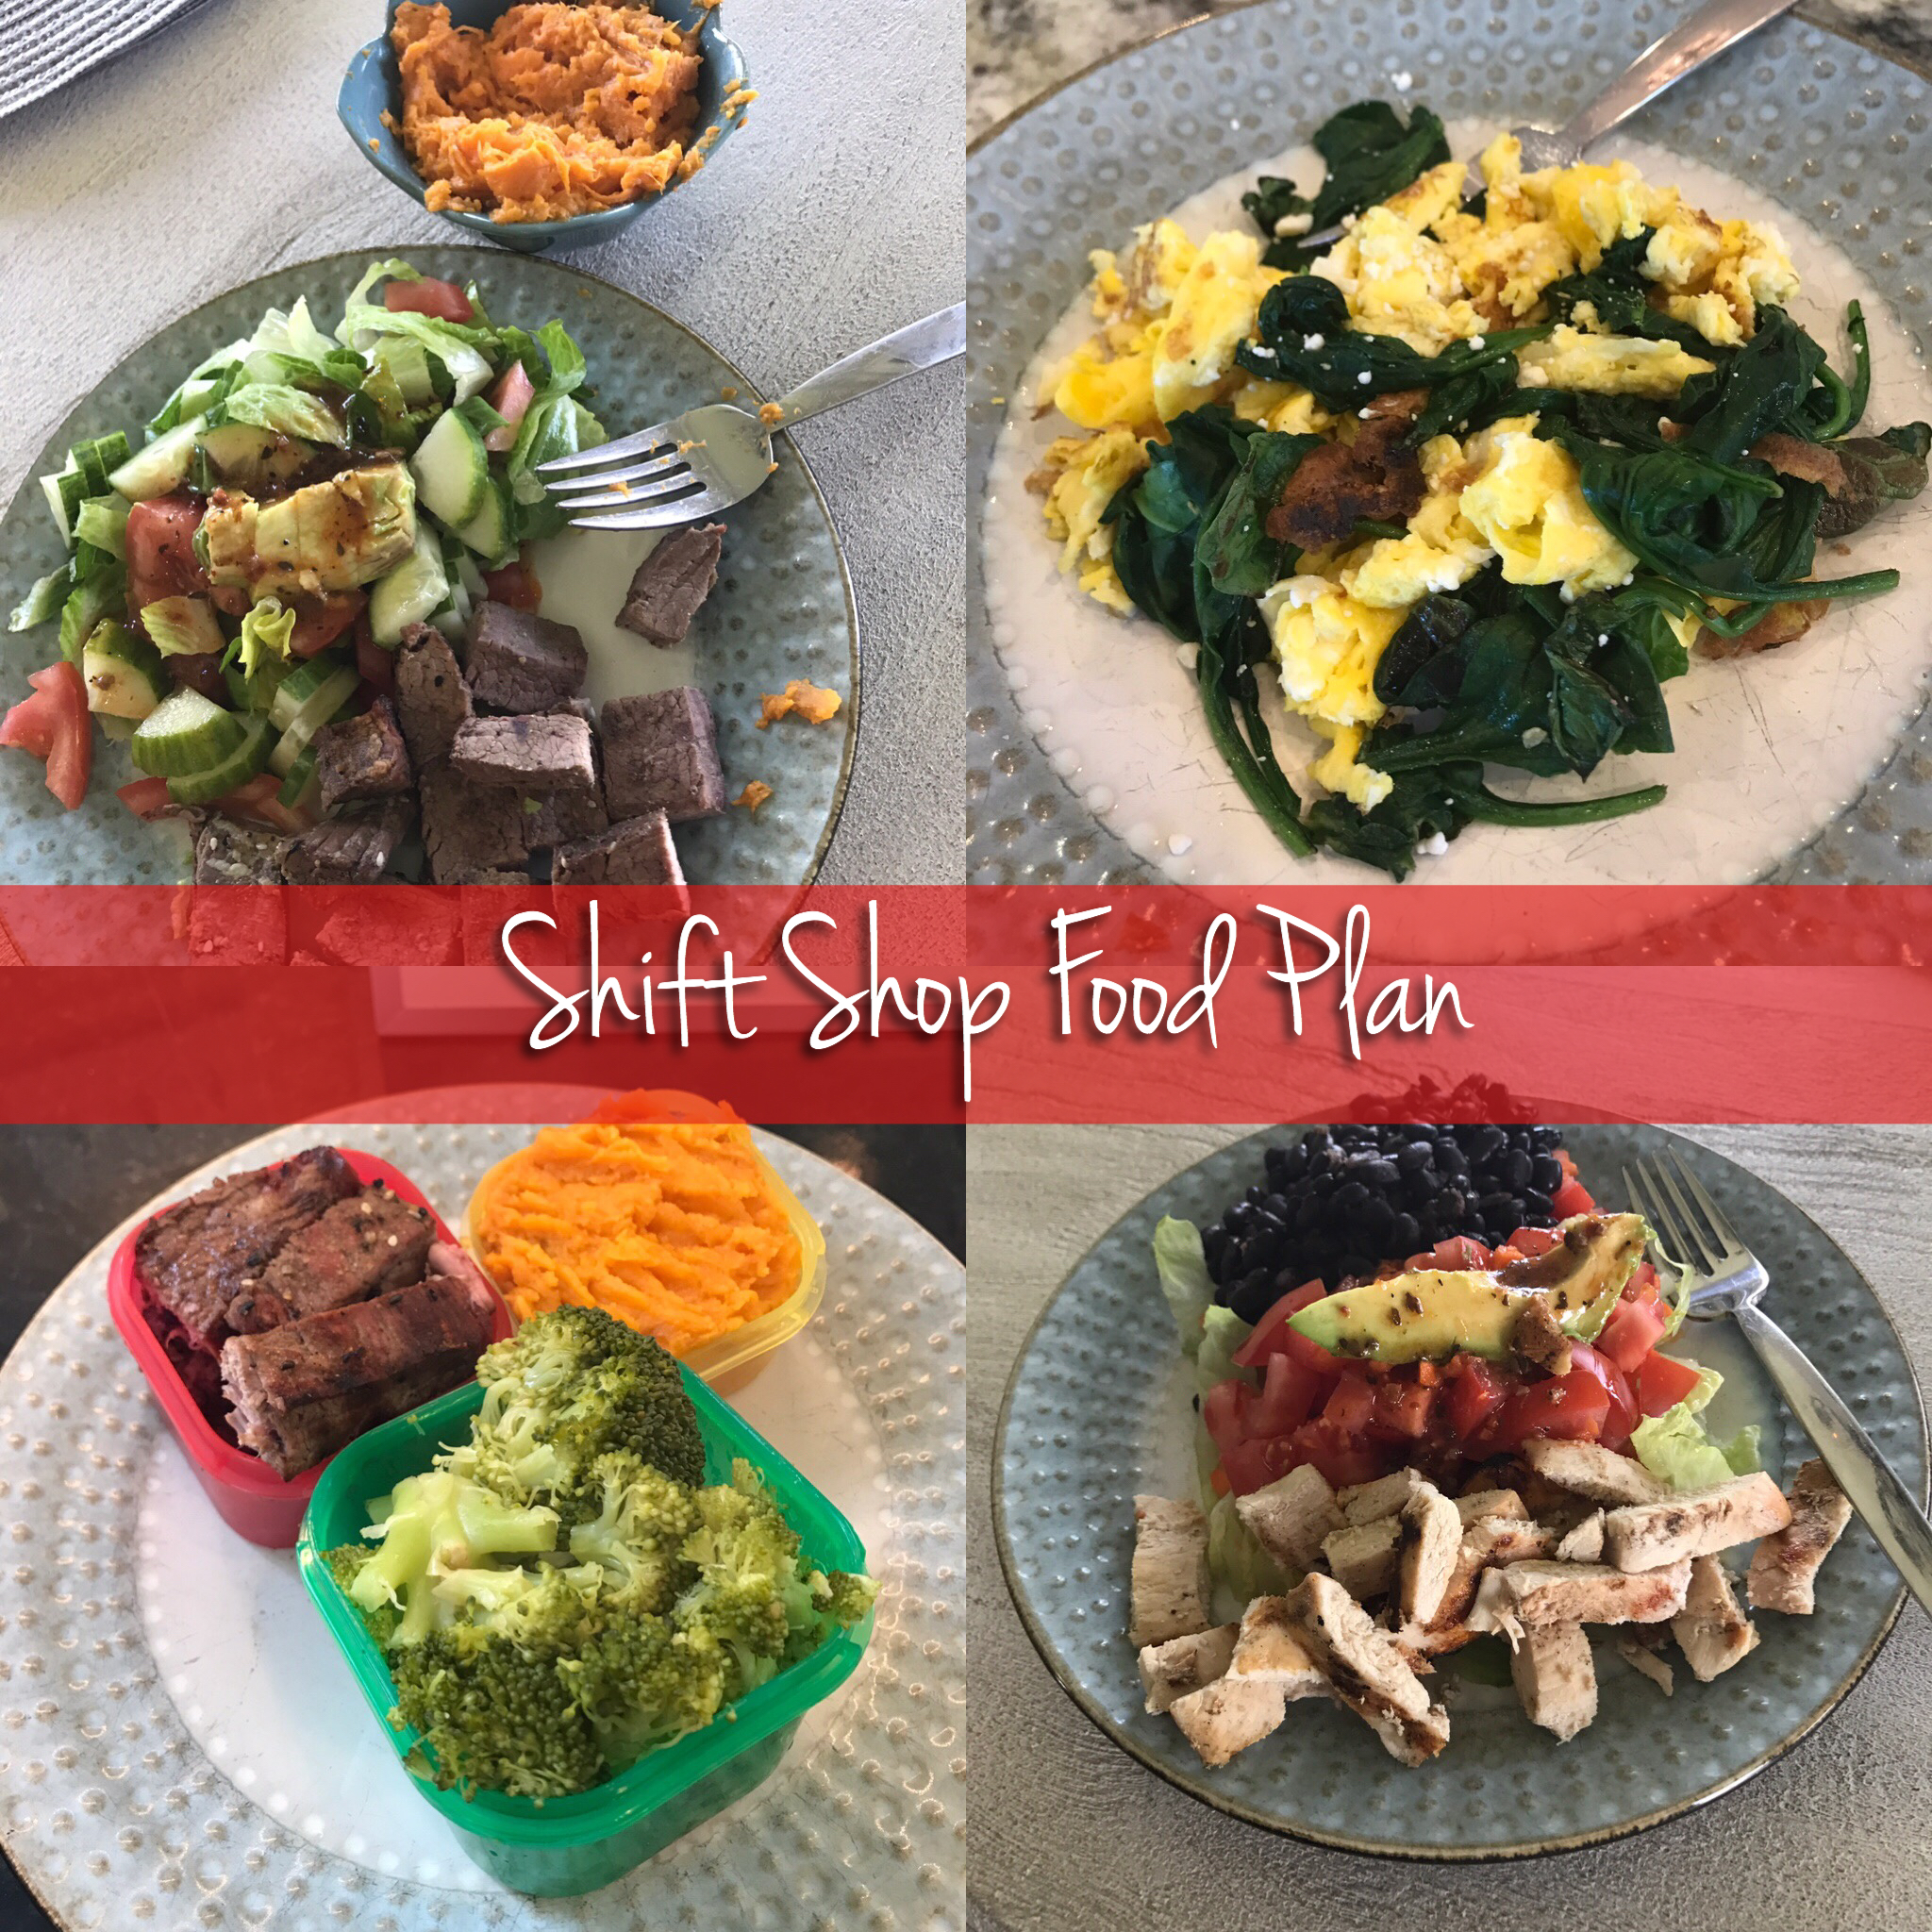 Shift Shop Nutrition Plan, Melanie Mitro, Top Coach, Coach Test Group, Food